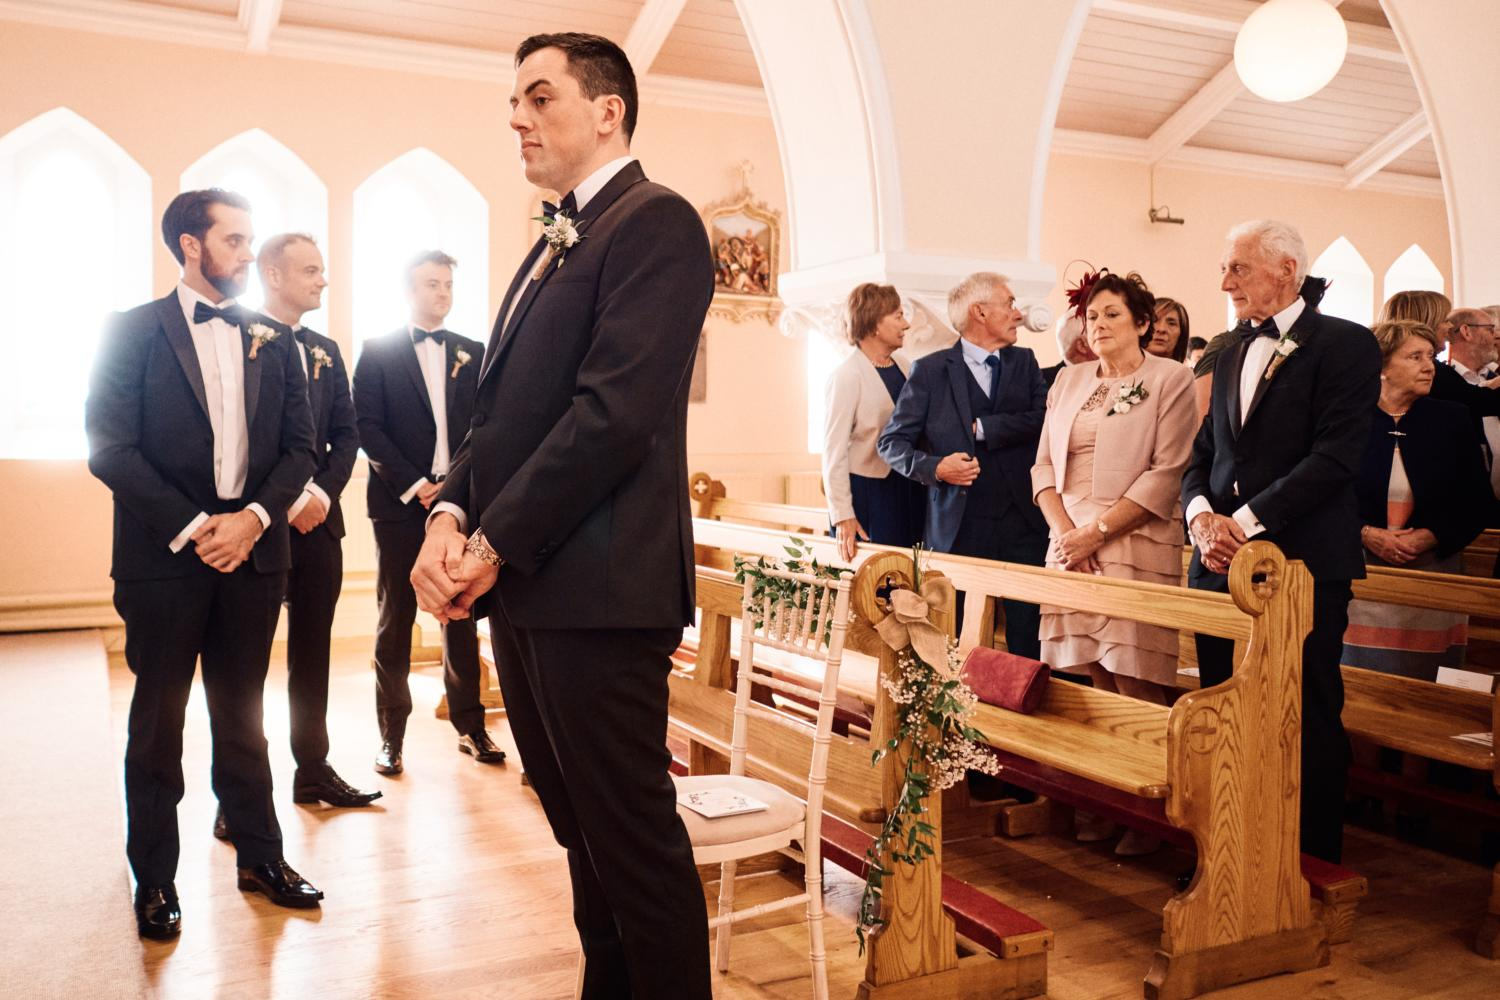 A groom in a tuxedo waits at the top of the aisle for the bride to arrive